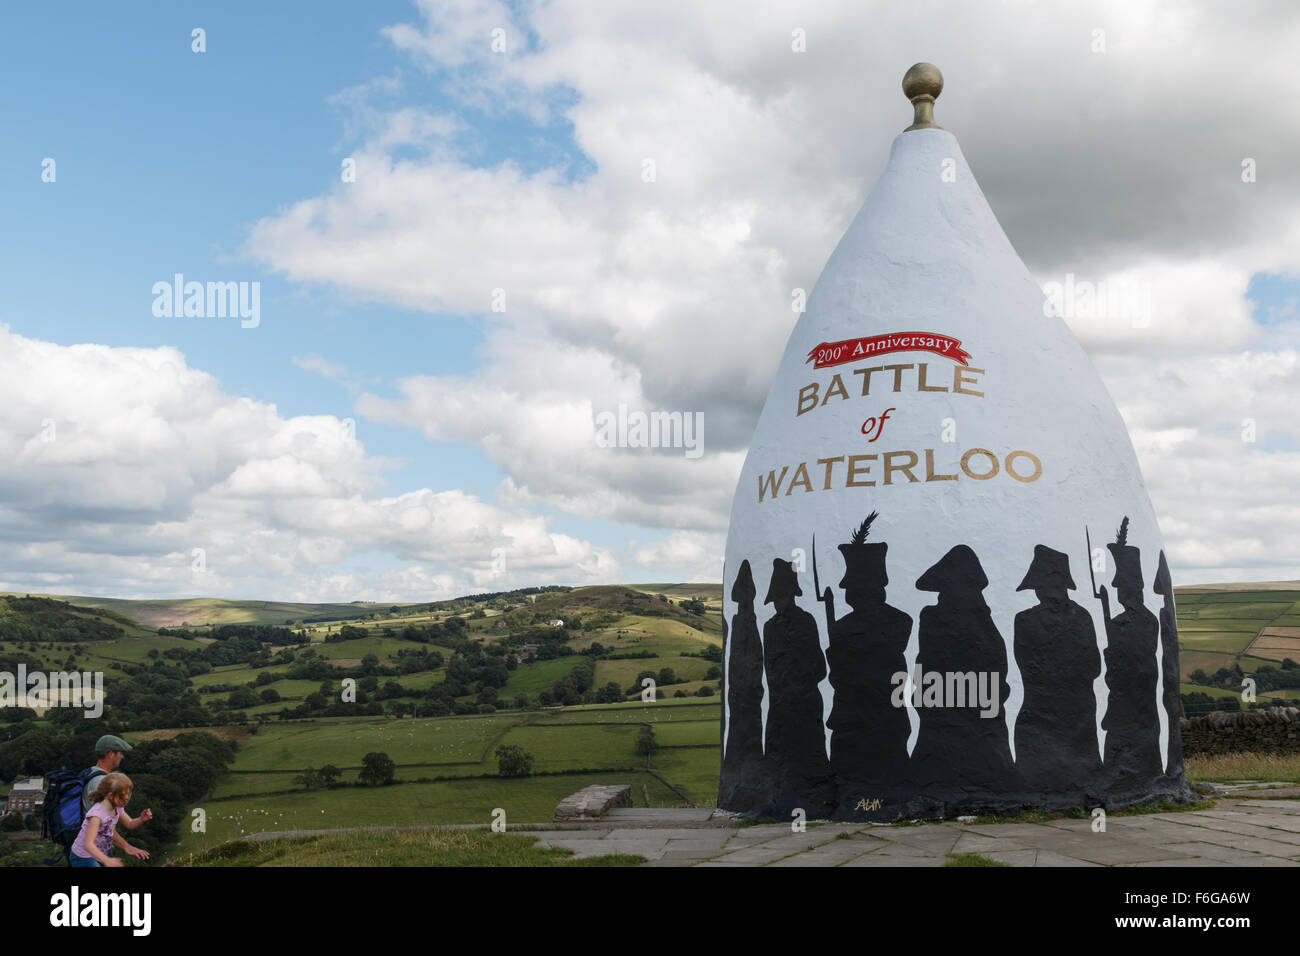 White Nancy in Bollington Cheshire displaying the Battle of Waterloo decoration. The monument is on the Gritstone - Stock Image